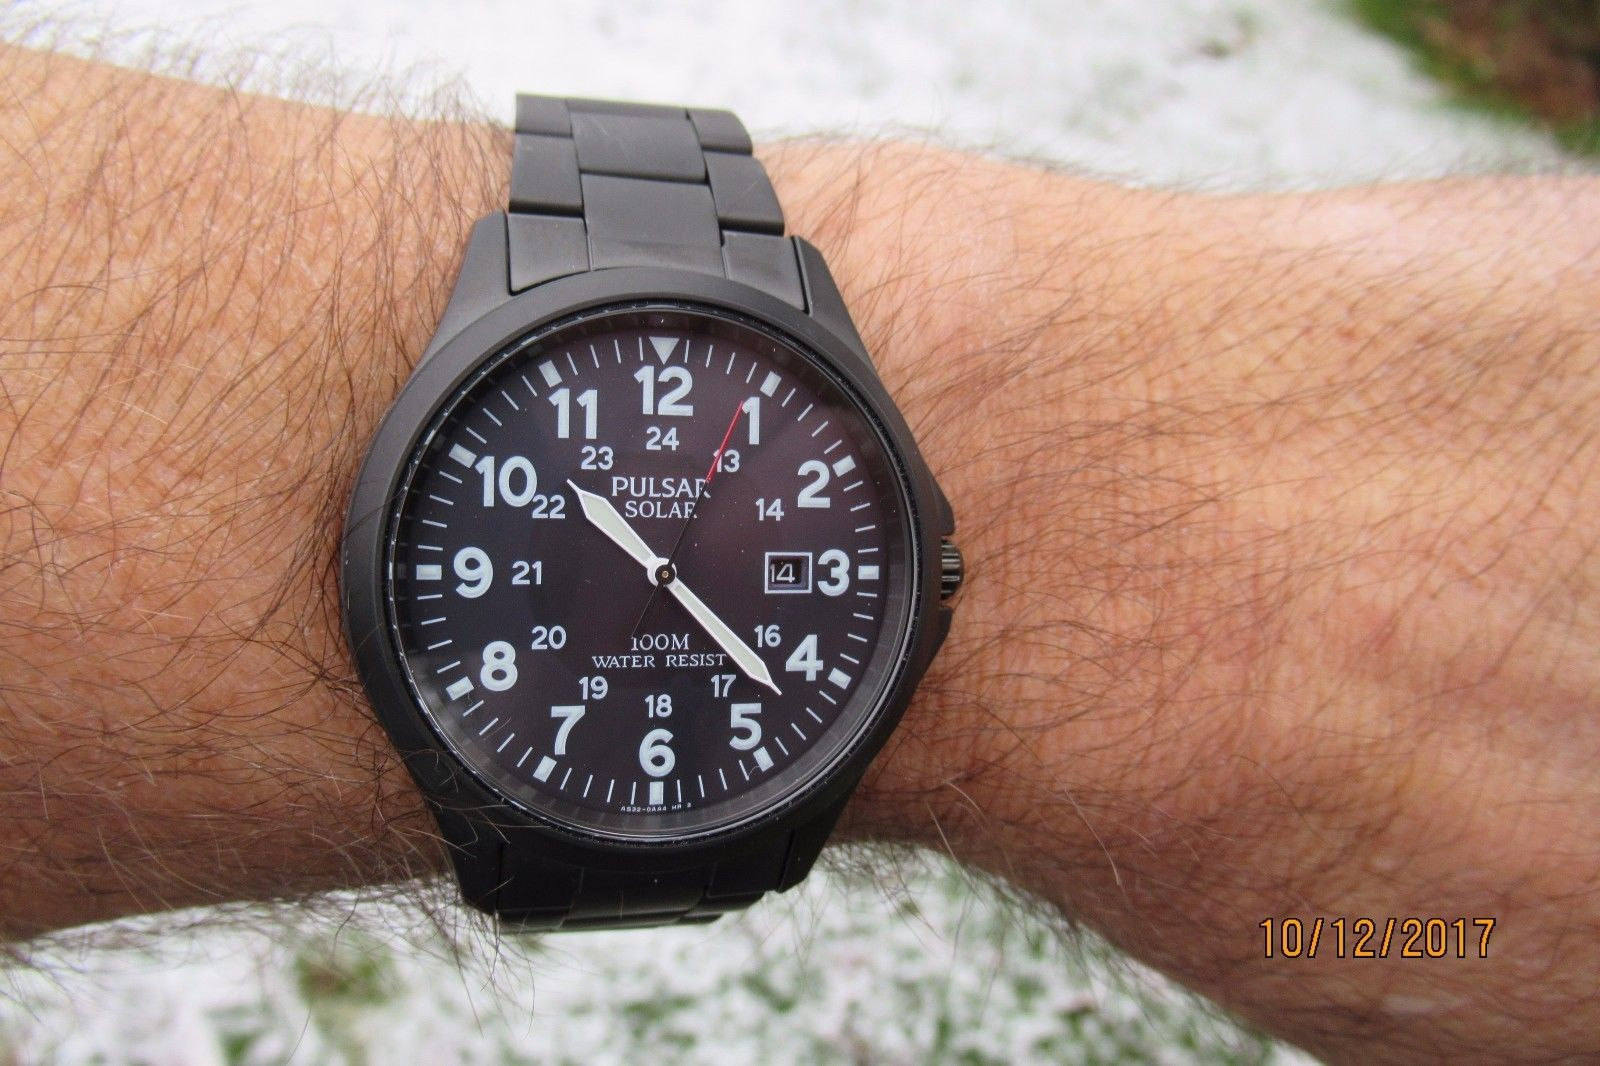 30aef4e9c PULSAR by SEIKO AS32-X001 ION-PLATED SOLAR POWERED WATCH EX-DISPLAY RRP  £179   eBay